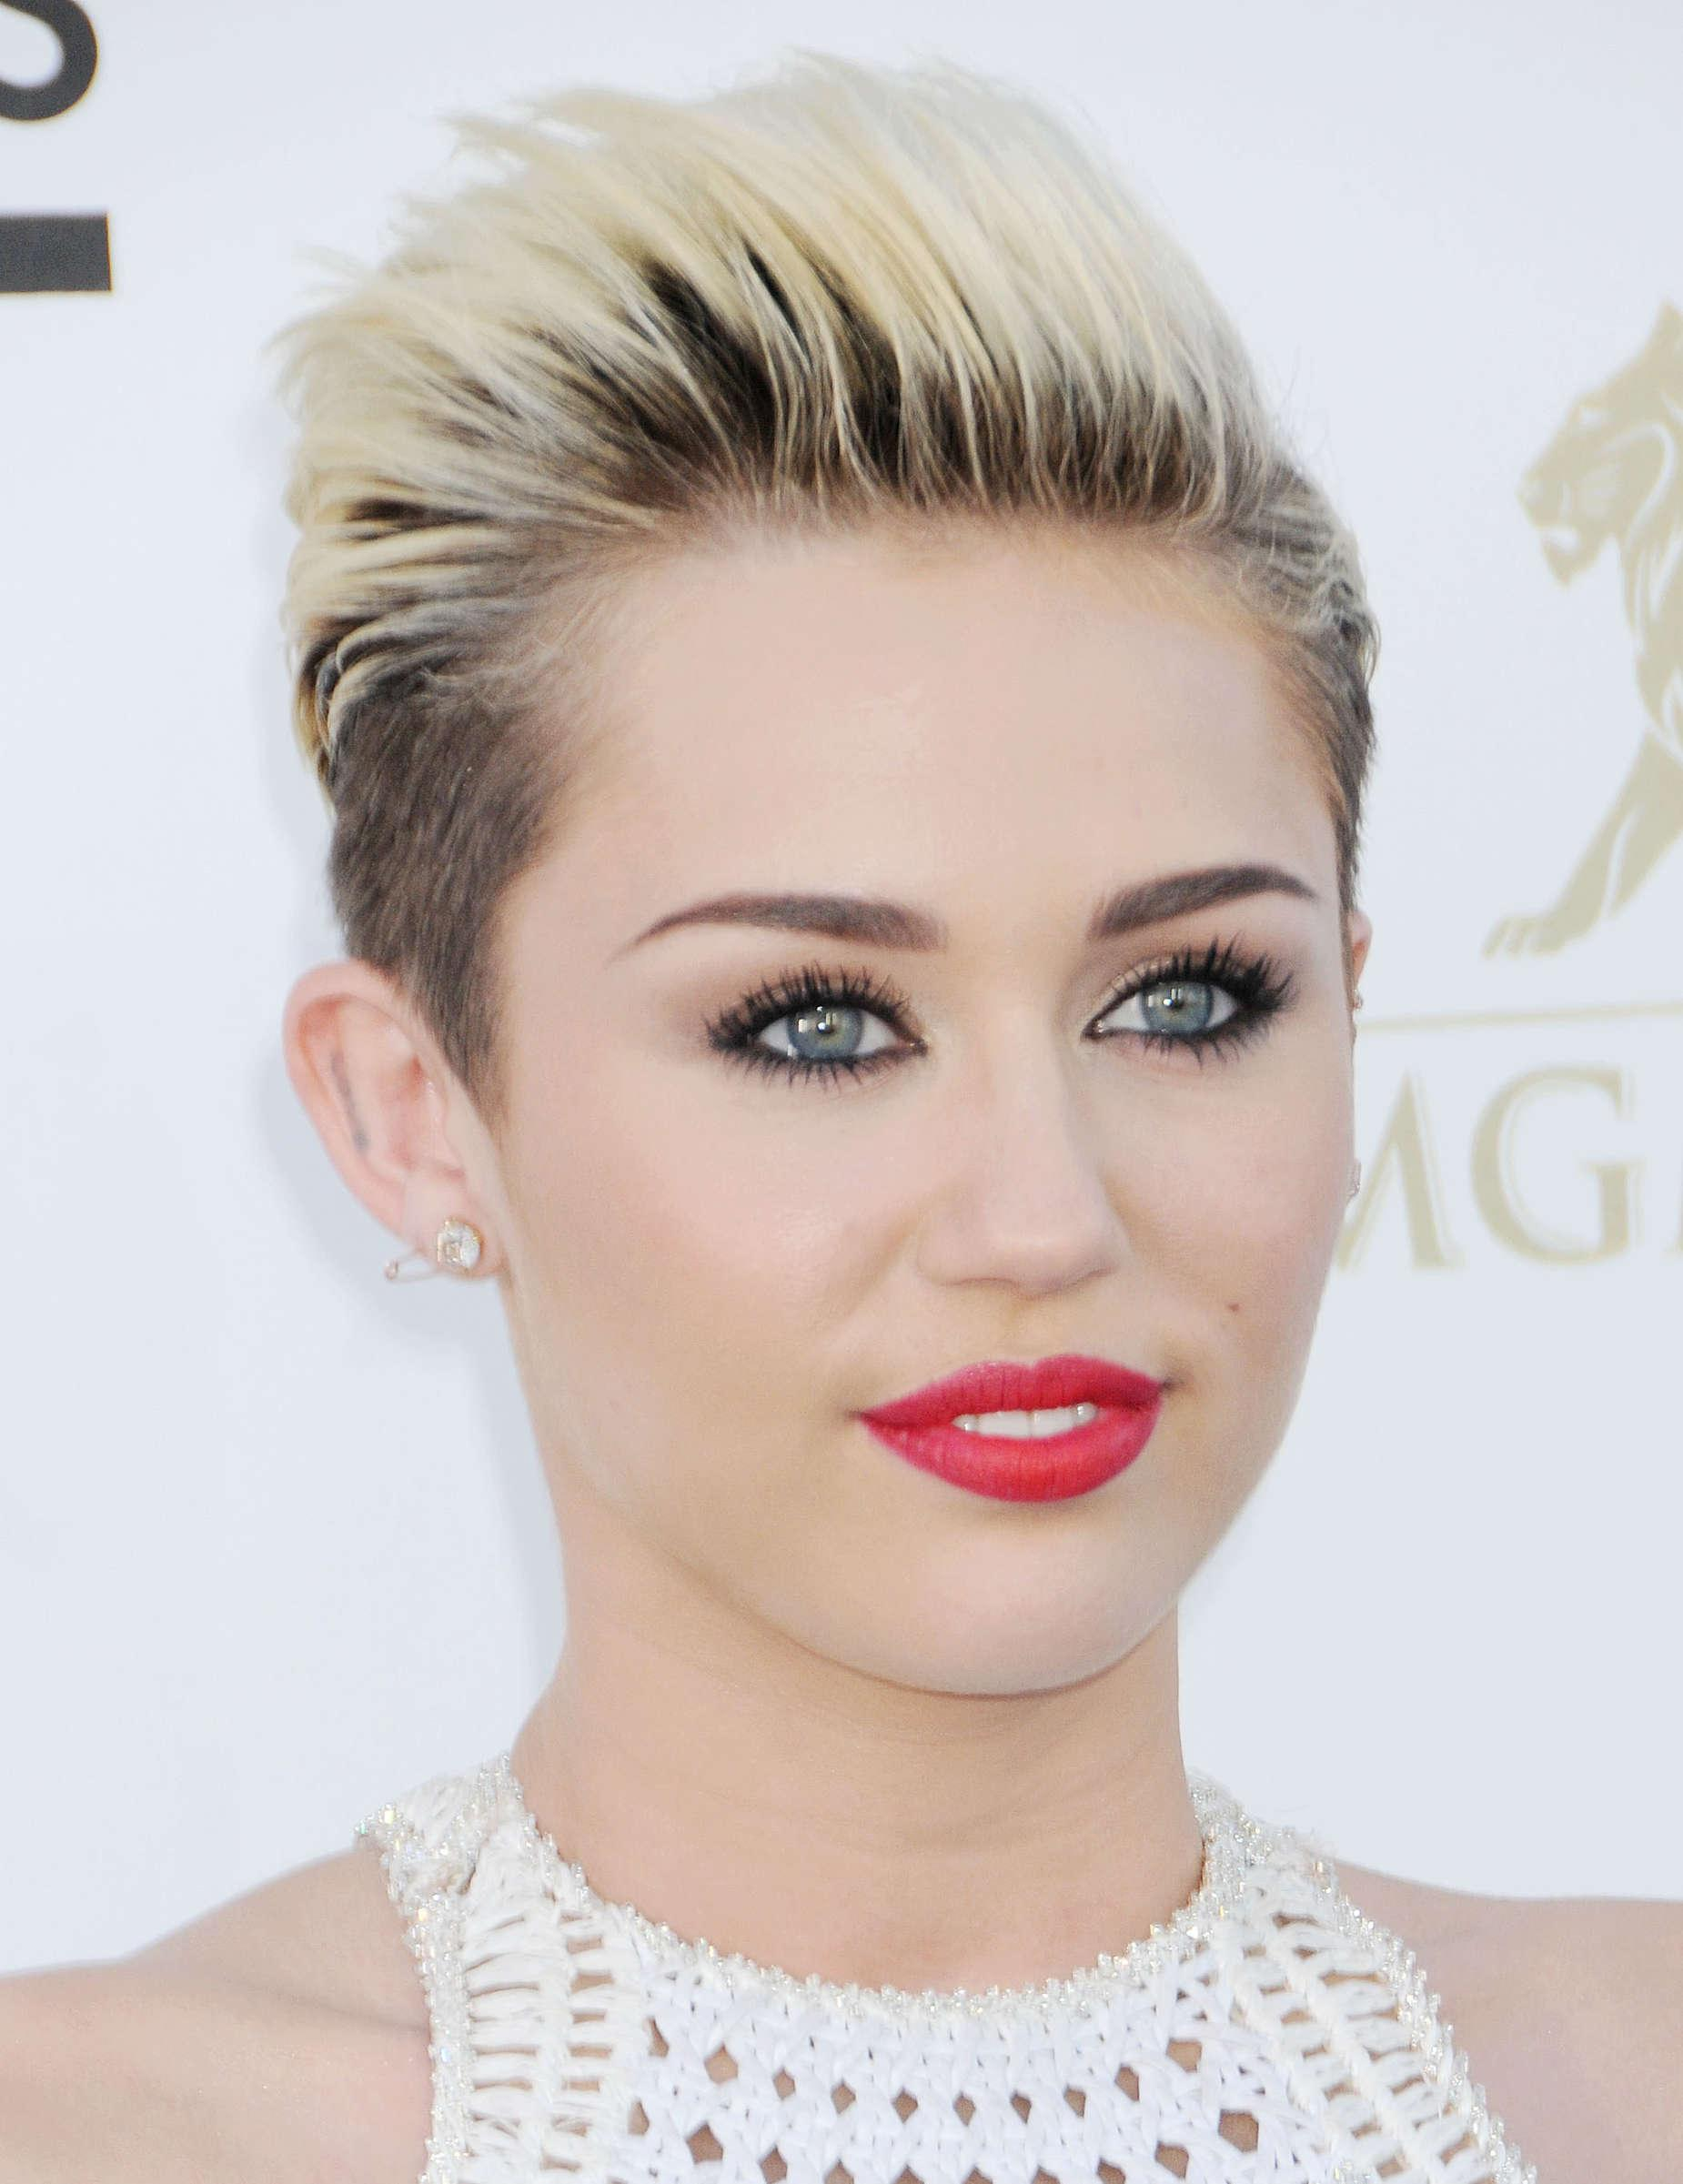 Miley Cyrus 2018 Wallpapers Wallpaper Cave